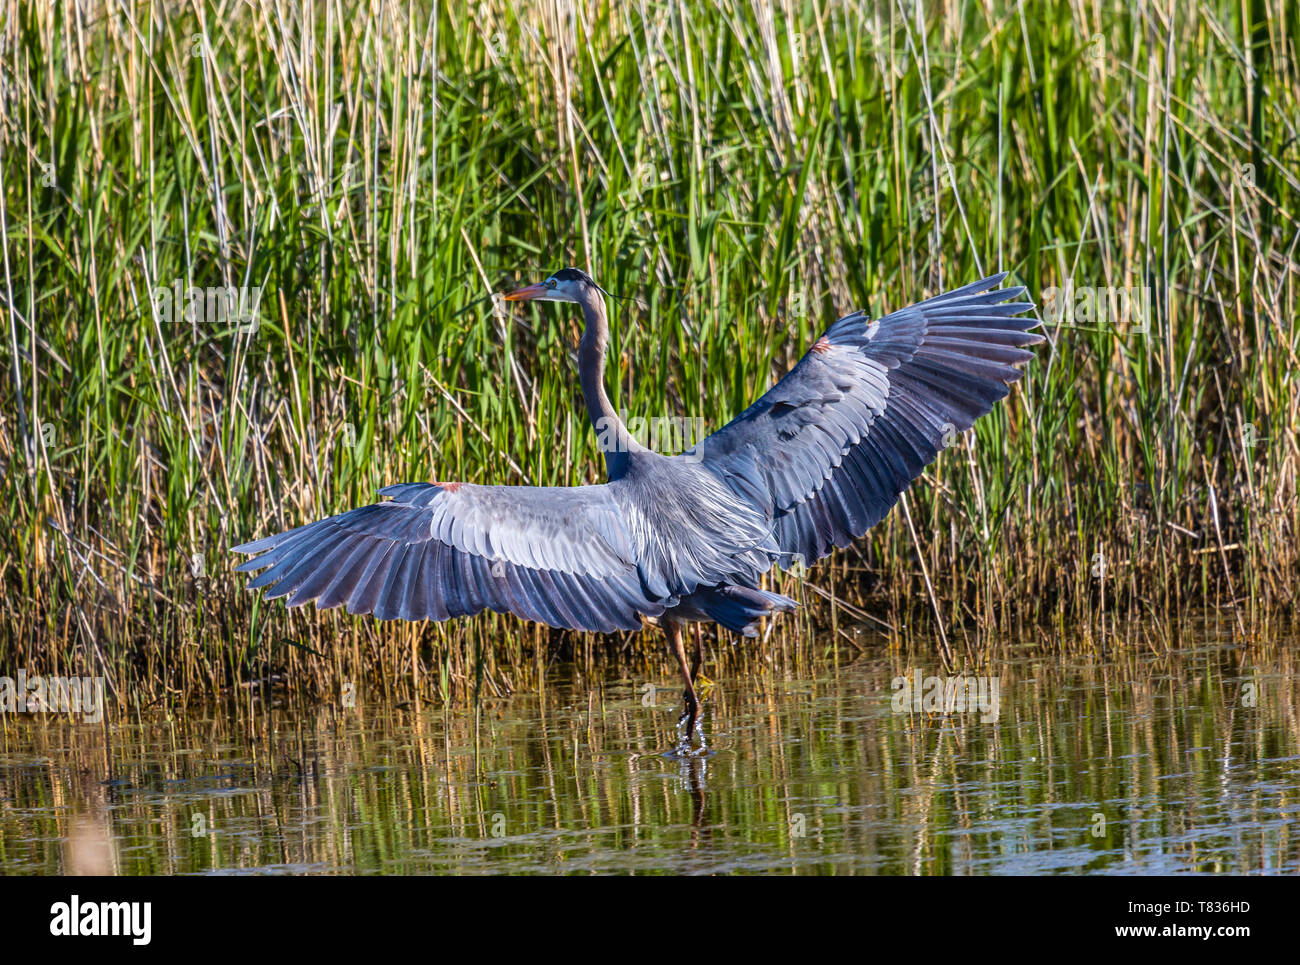 In this shot a Great Blue Heron spreads its wings as it wades in the wetland waters of Bear River Migratory Bird Refuge near Brigham City, Utah, USA. - Stock Image